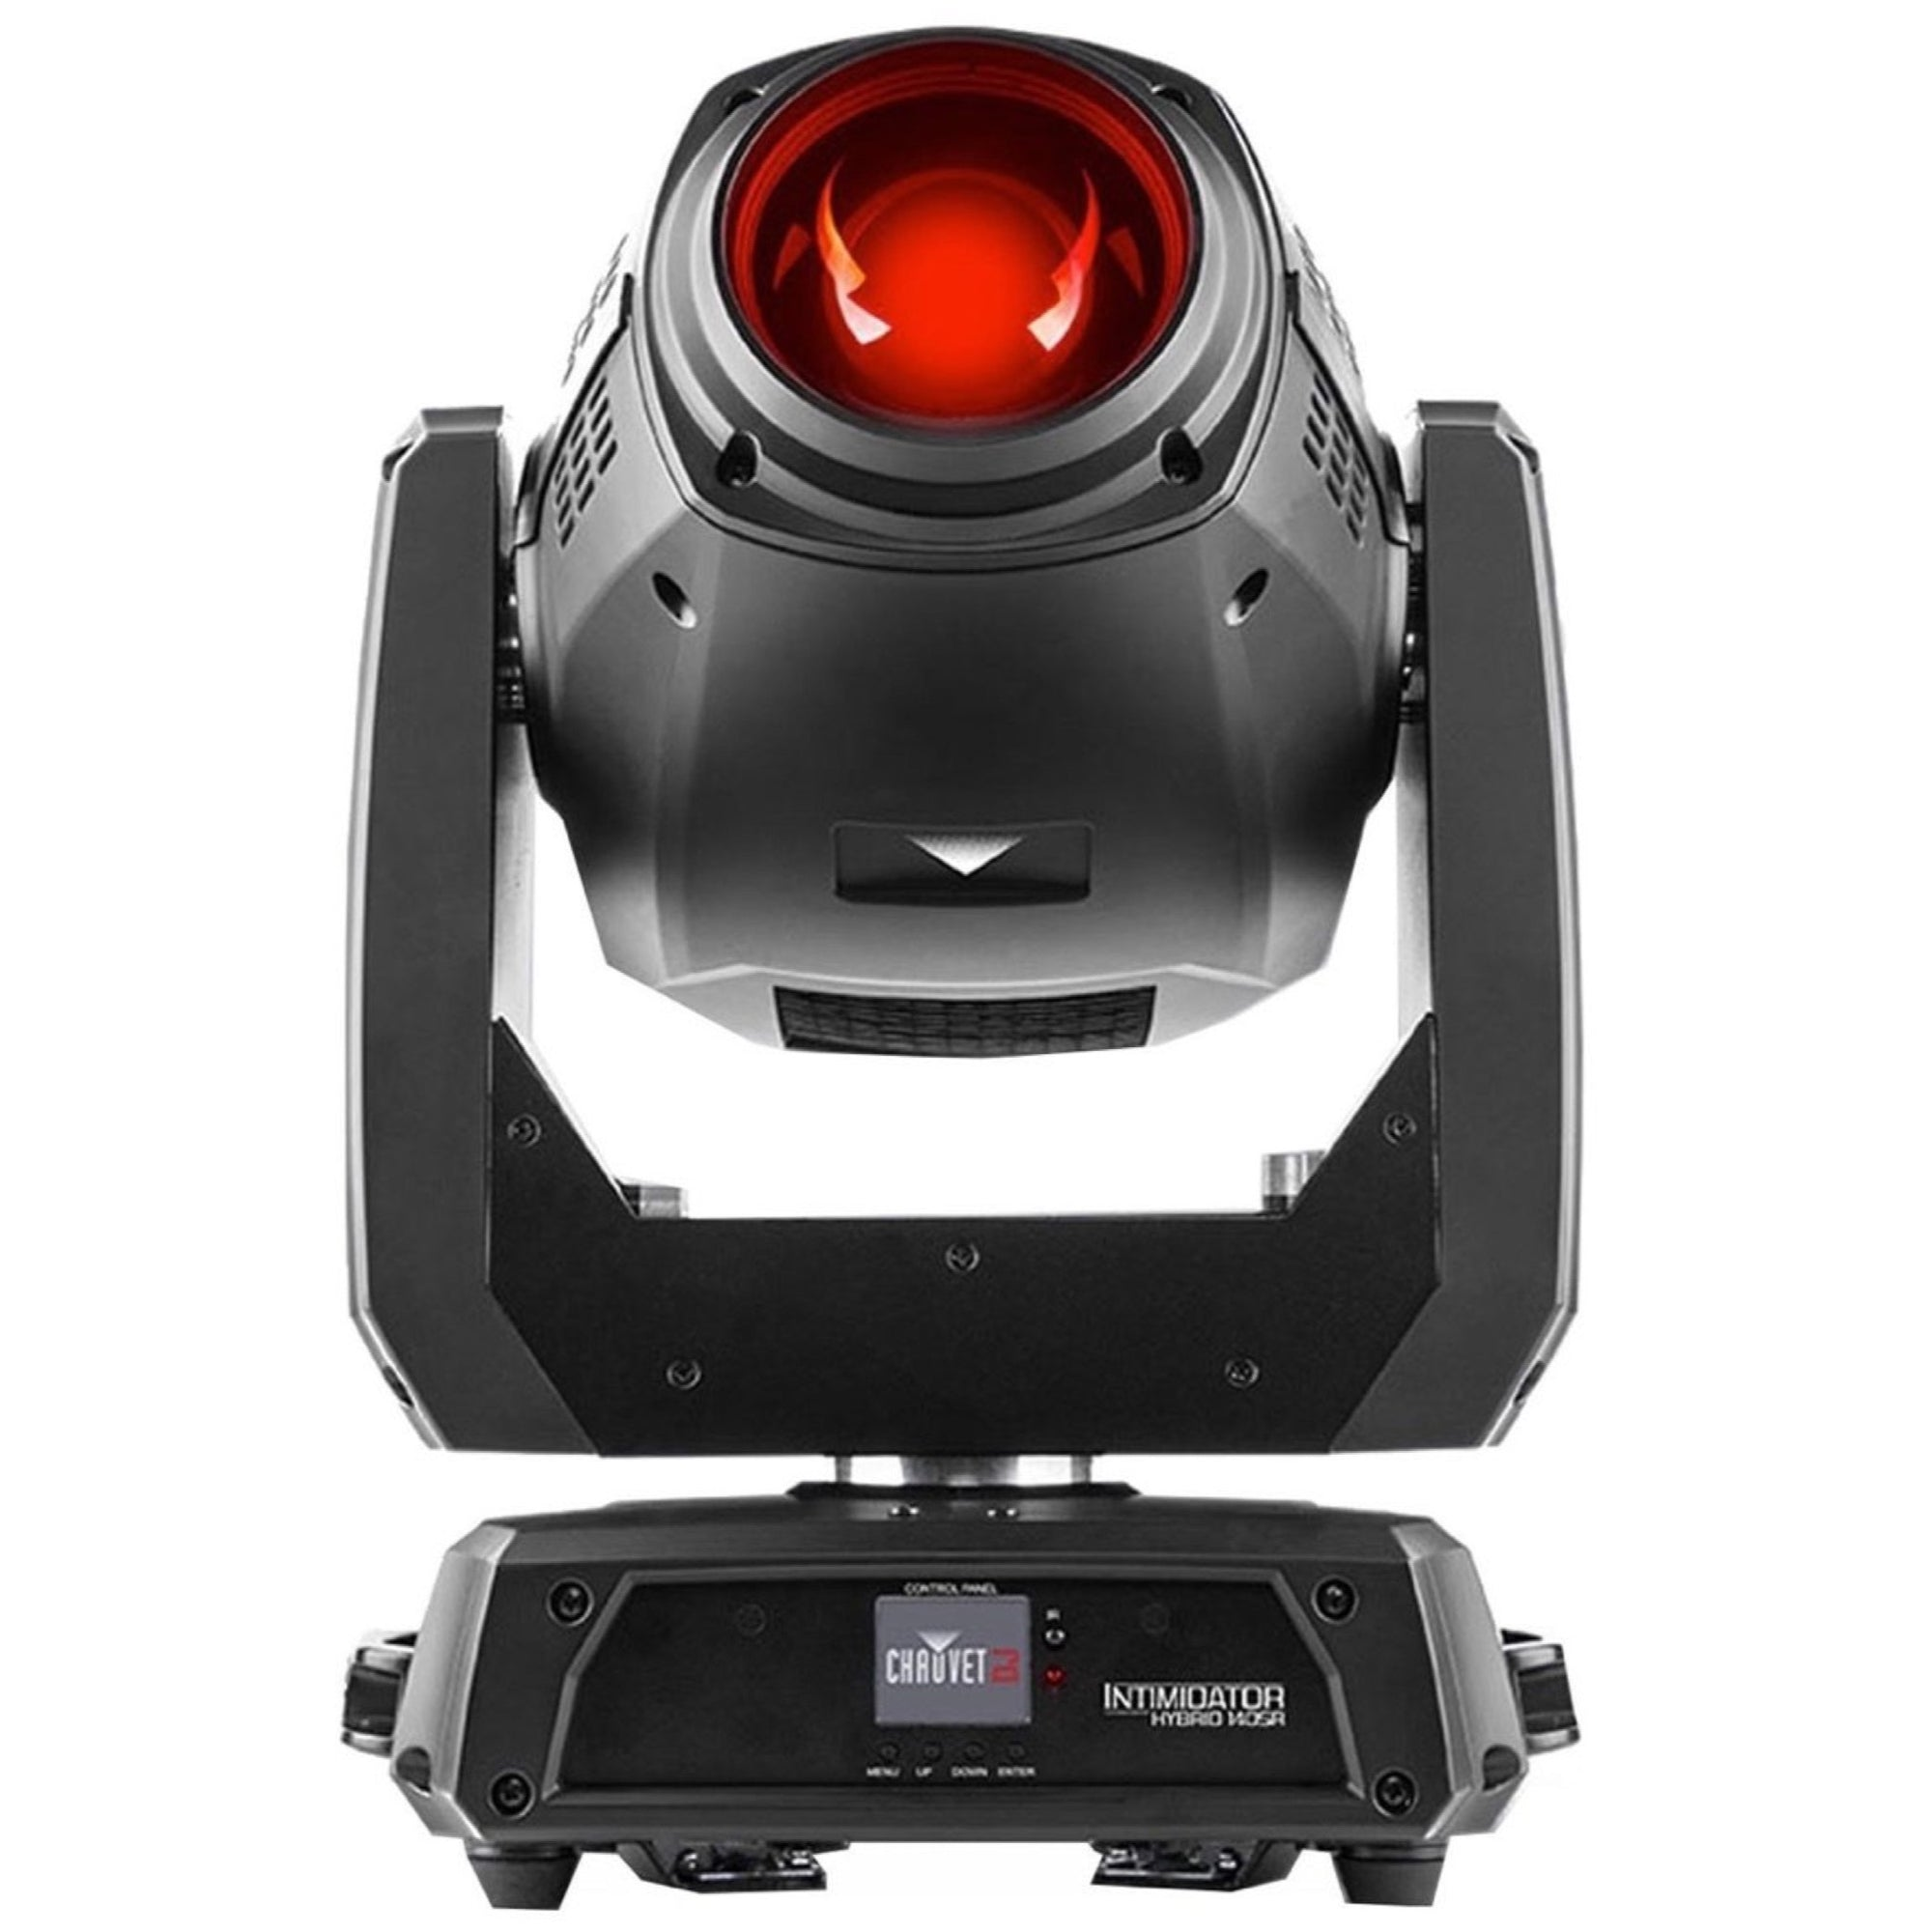 Chauvet DJ Intimidator Hybrid 140SR Light